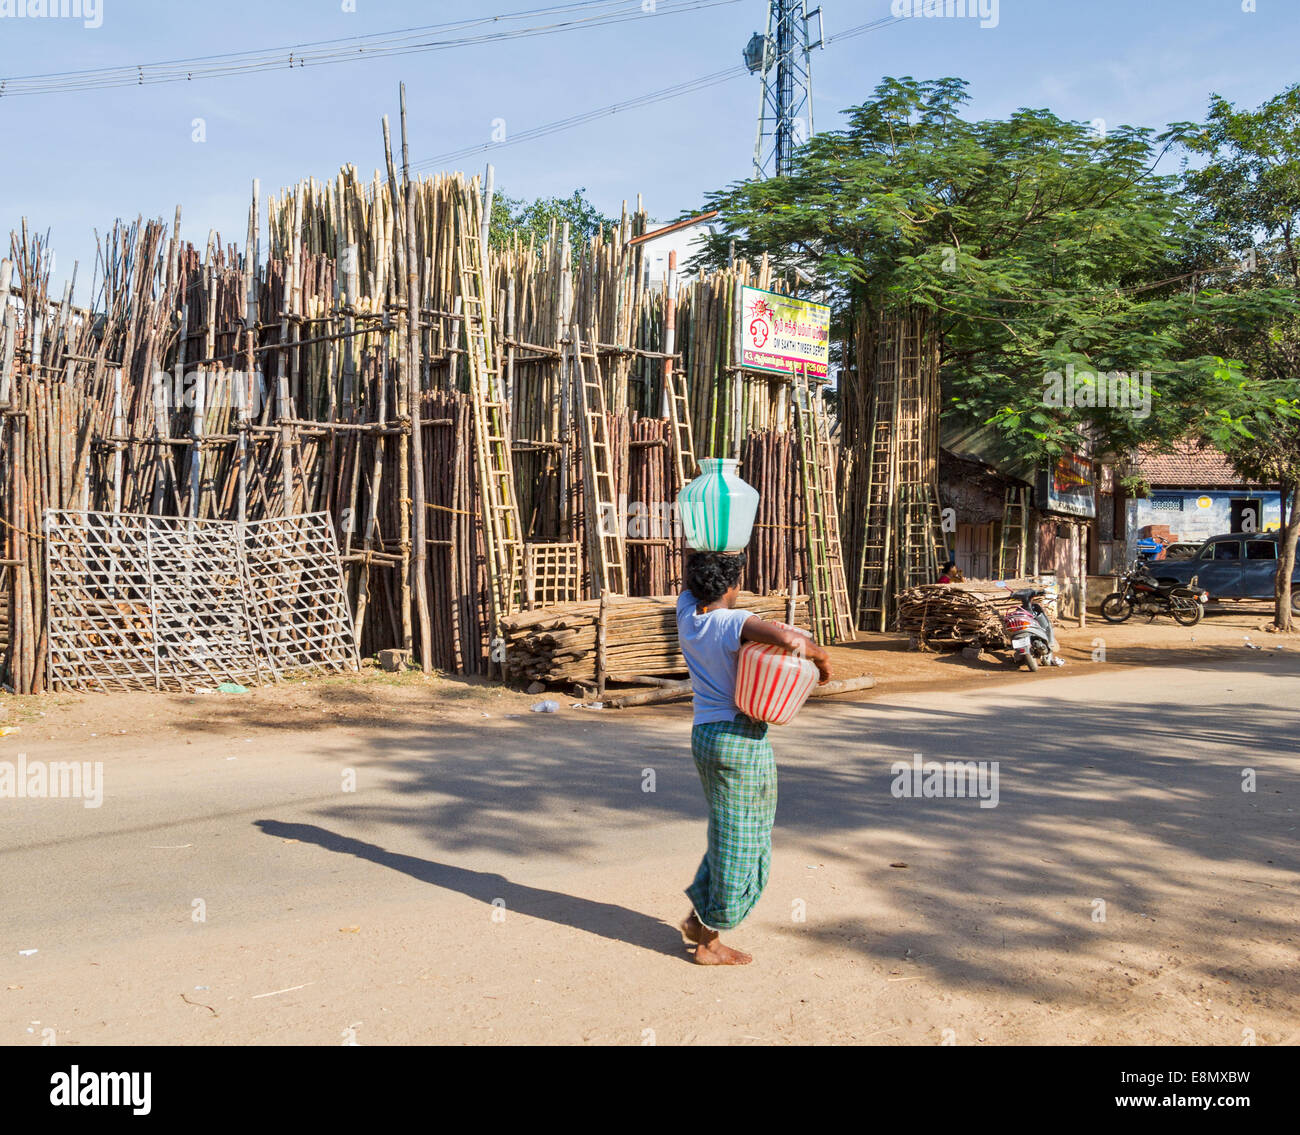 MADURAI INDIA CARRYING A COLOURED WATER POT BALANCED ON THE HEAD - Stock Image